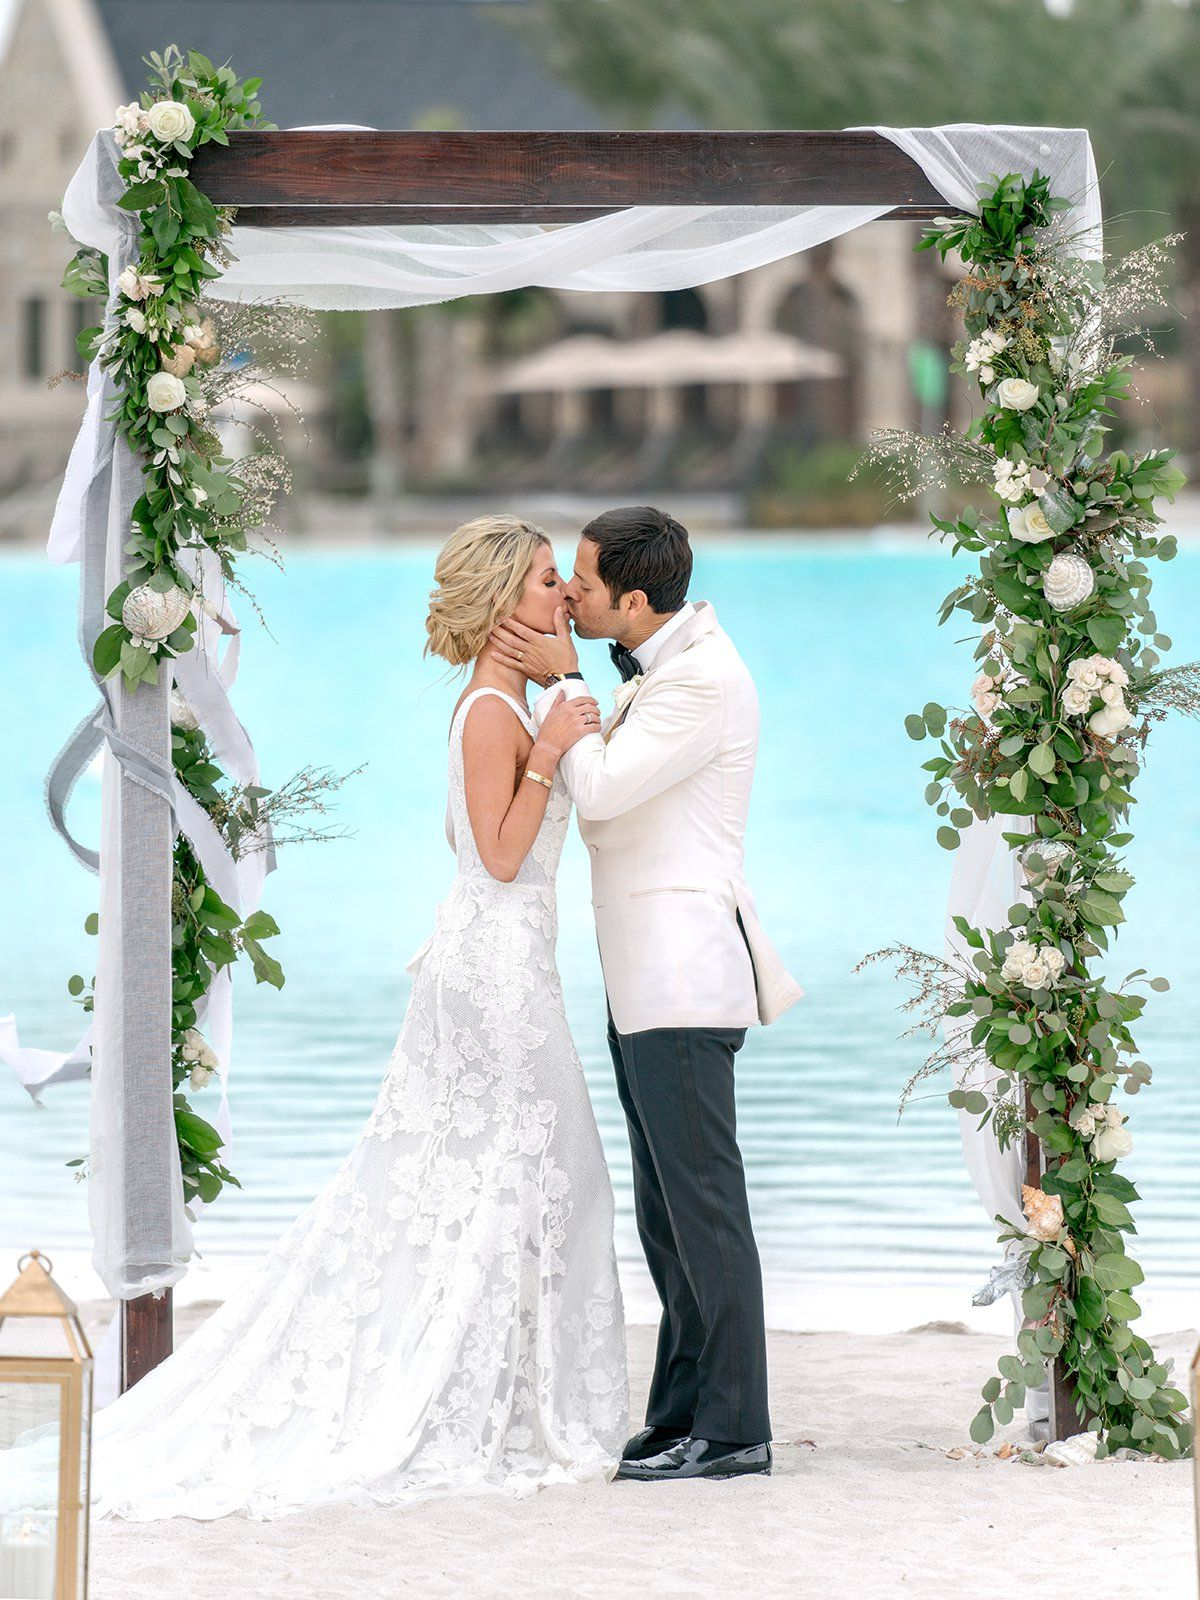 Beautiful Beachside Lagoon Wedding Ceremony Setup Floral Arch